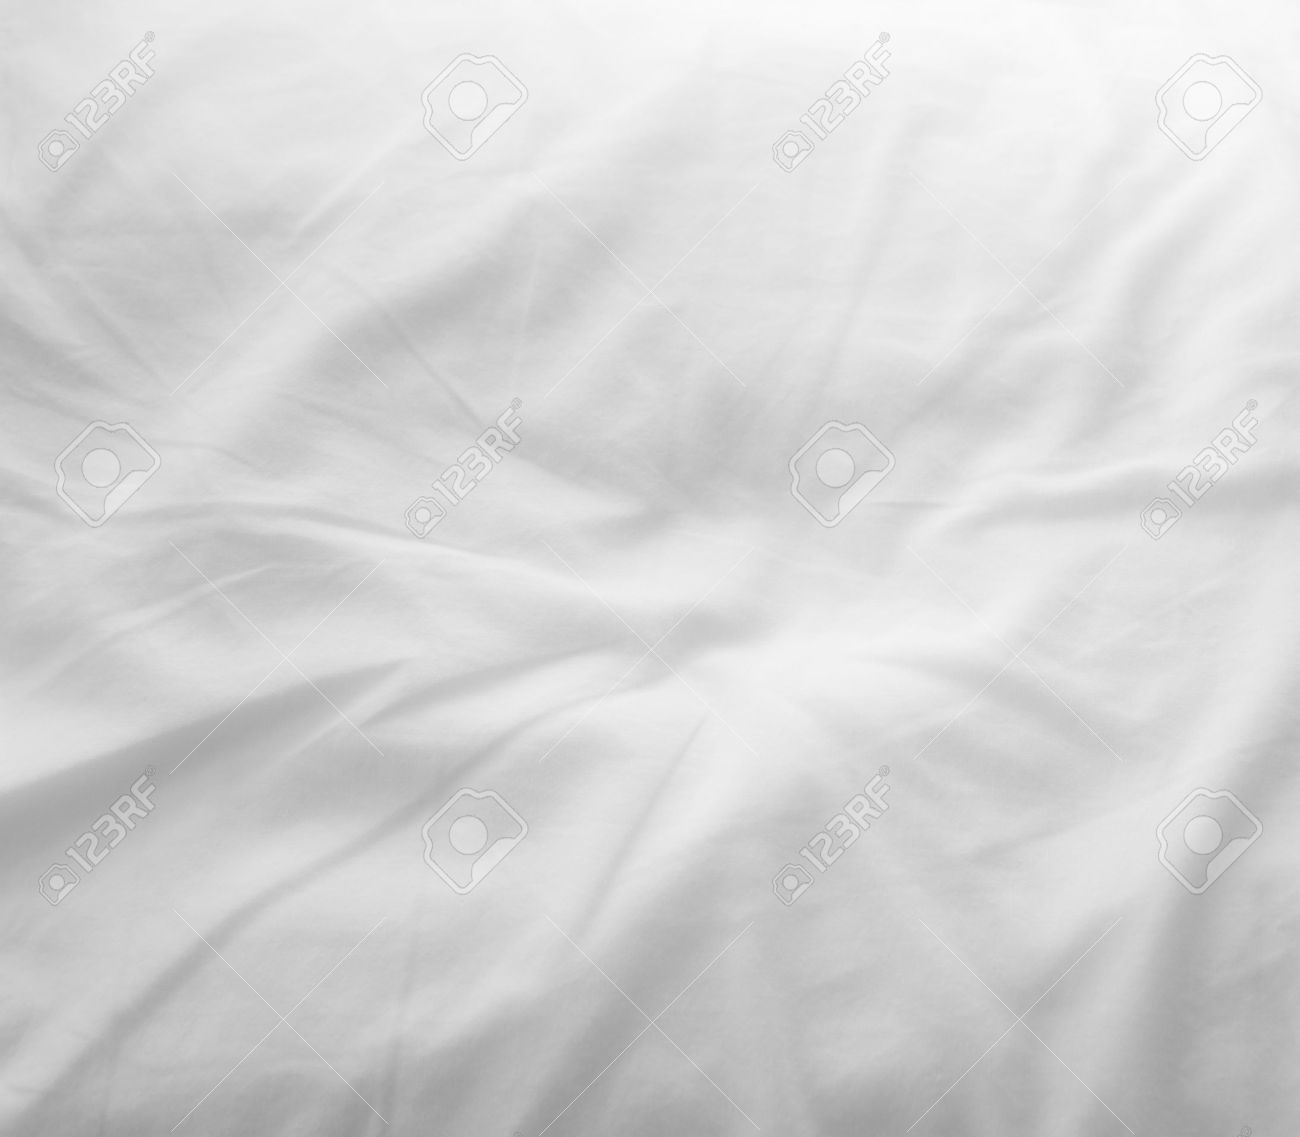 White bed sheets texture - Soft White Bed Sheets Background Stock Photo 36495610